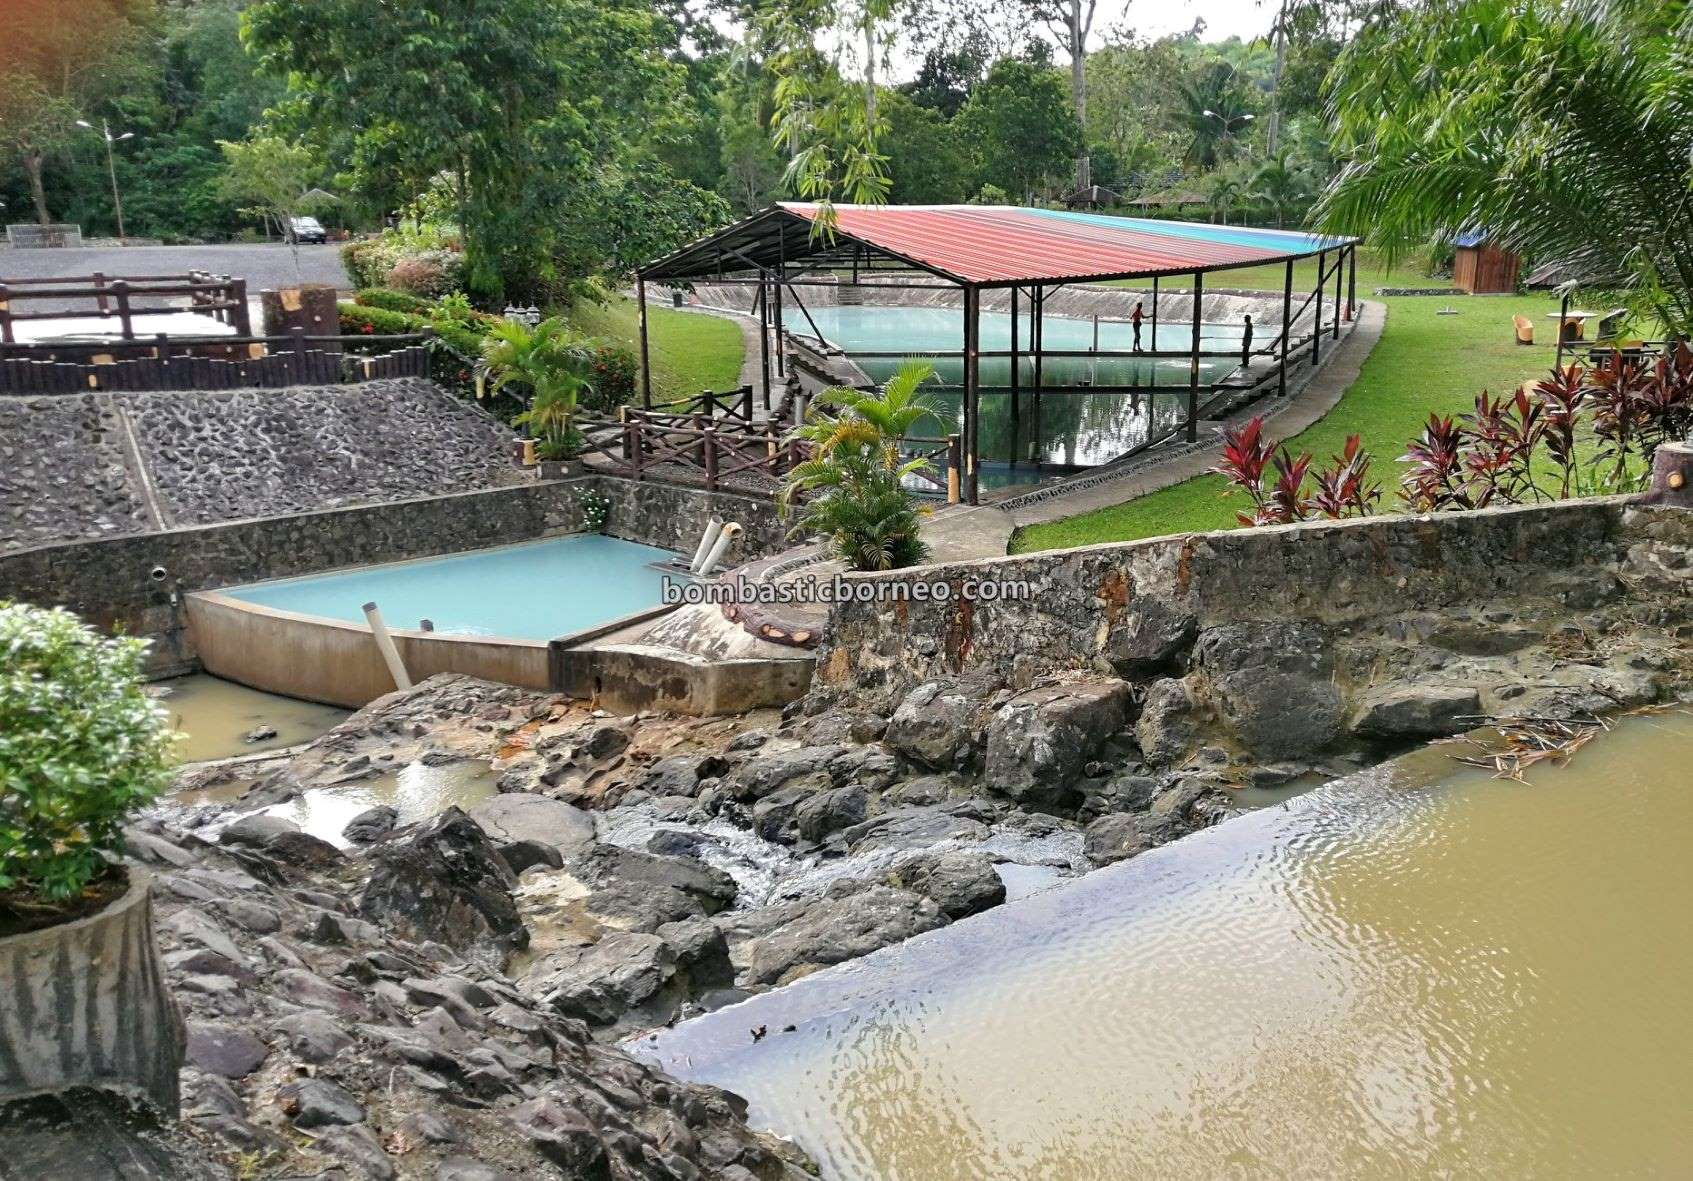 hot spring, nature, outdoor, recreational, water park, exploration, family holiday, Malaysia, Tourist attraction, Travel guide, Borneo, 婆罗洲游踪, 马来西亚沙巴, 斗湖温泉旅游景点